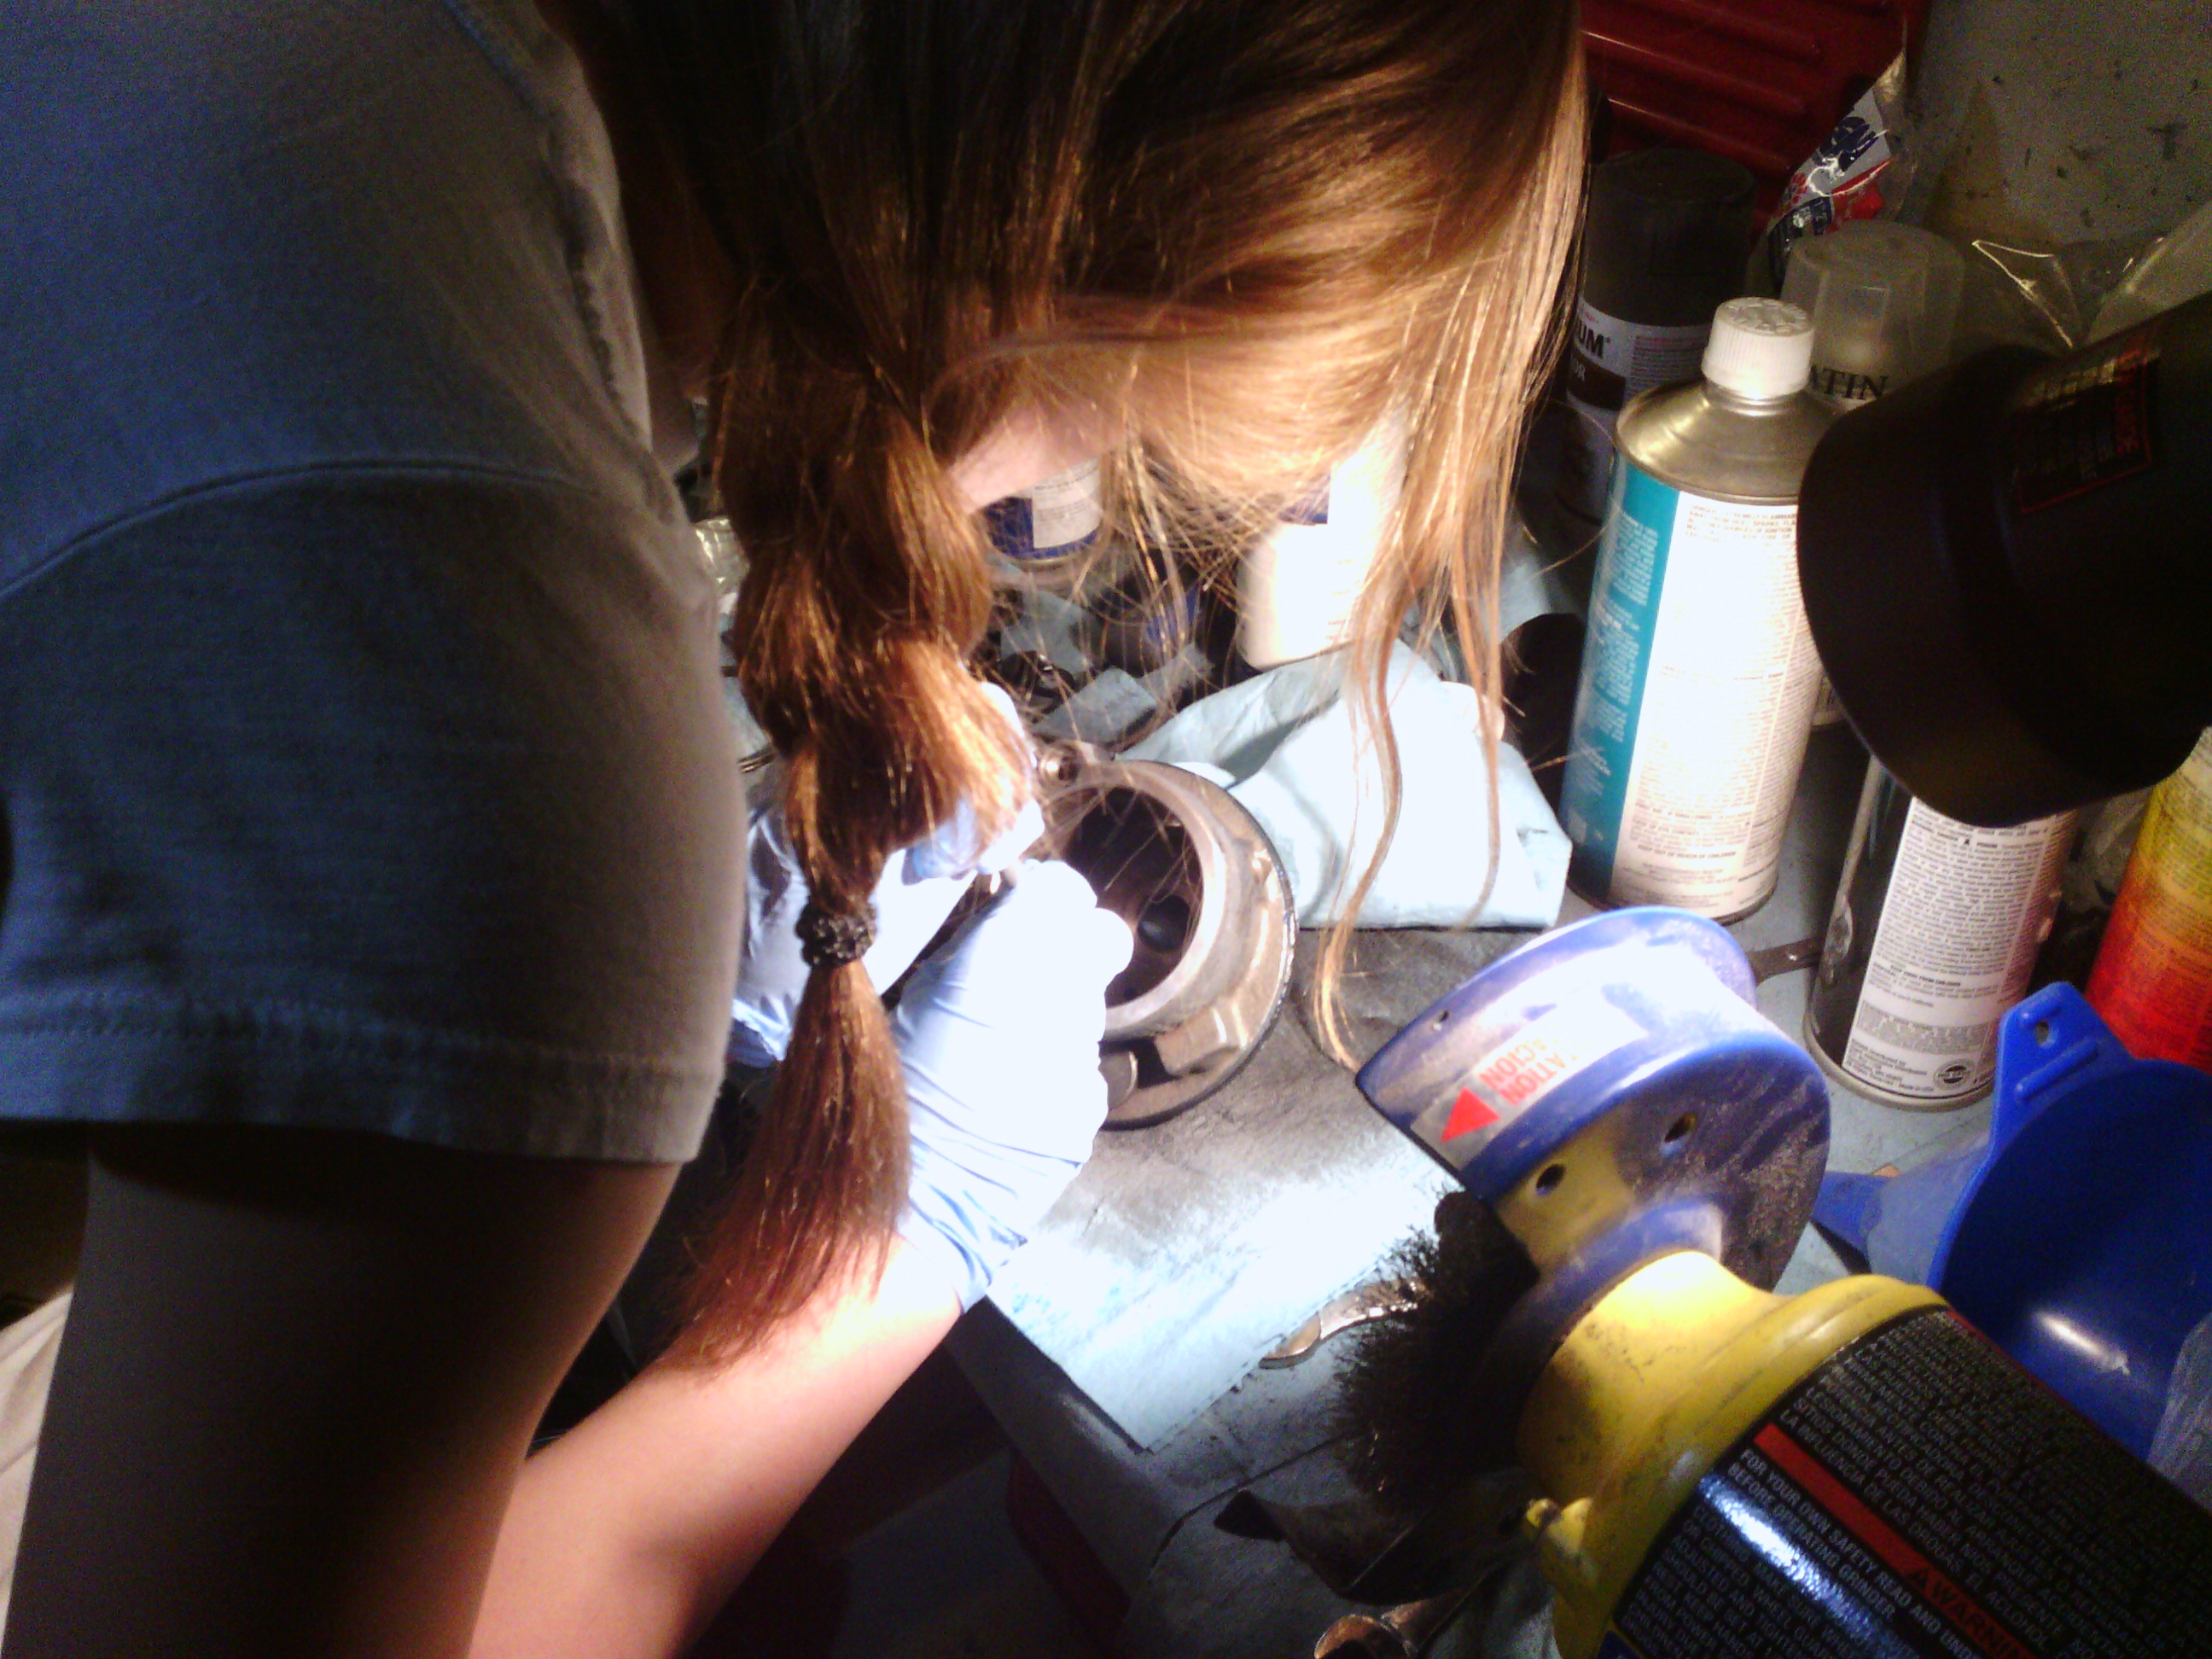 Jackie replacing the inner o-ring seals on the power steering pump.  The old o-rings were hardened and brittle and simply broke apart when being removed, which was not surprising since they were 38-years old!